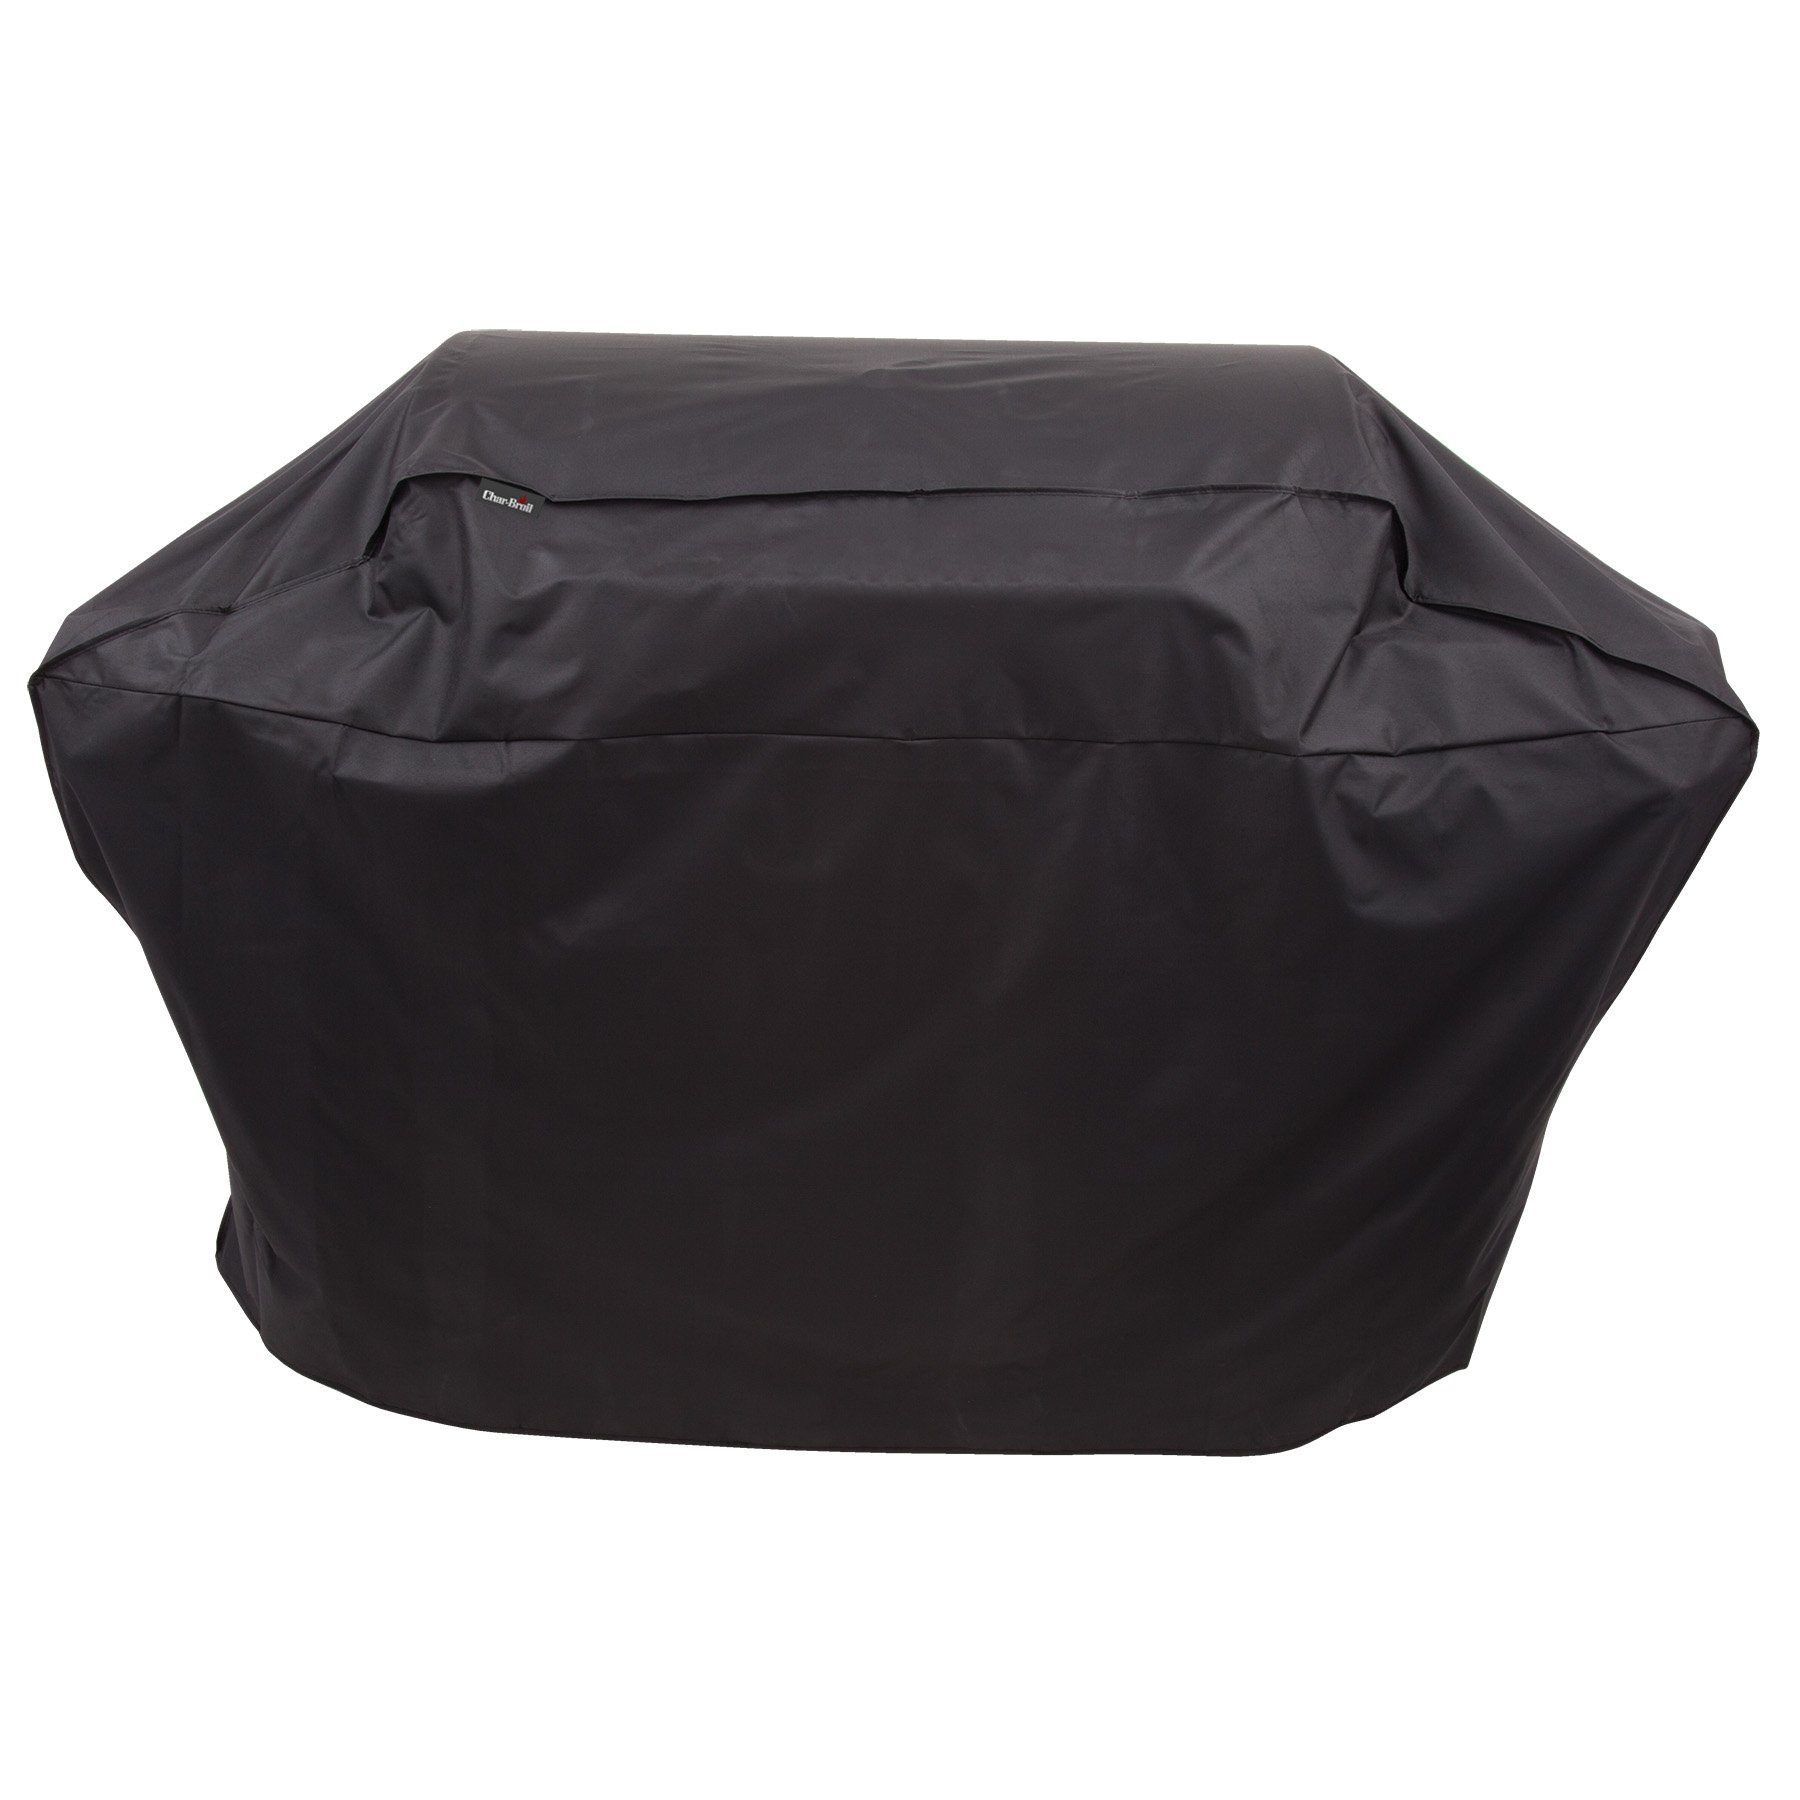 Char Broil All-Season Grill Cover, 5+ Burner: Extra Large by Char-Broil